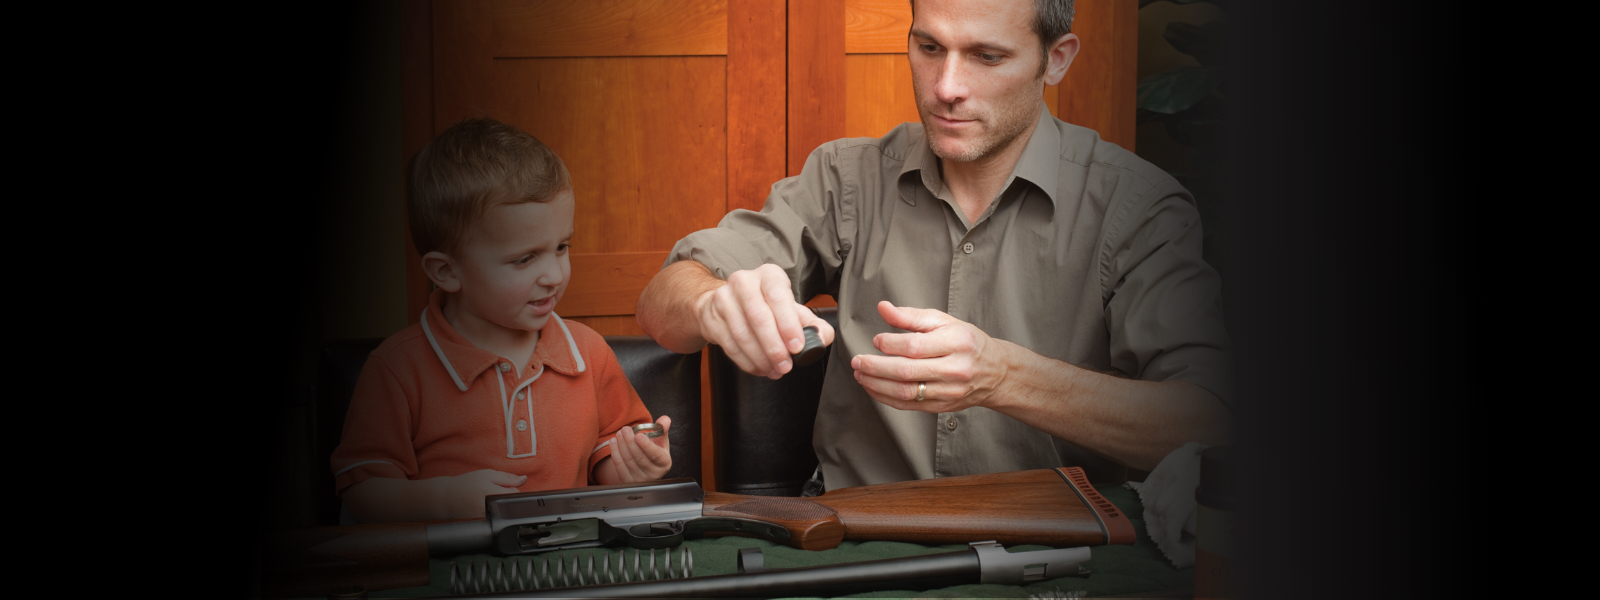 Children's Firearms & Safety Fundamentals: How to Teach Kids About Firearms